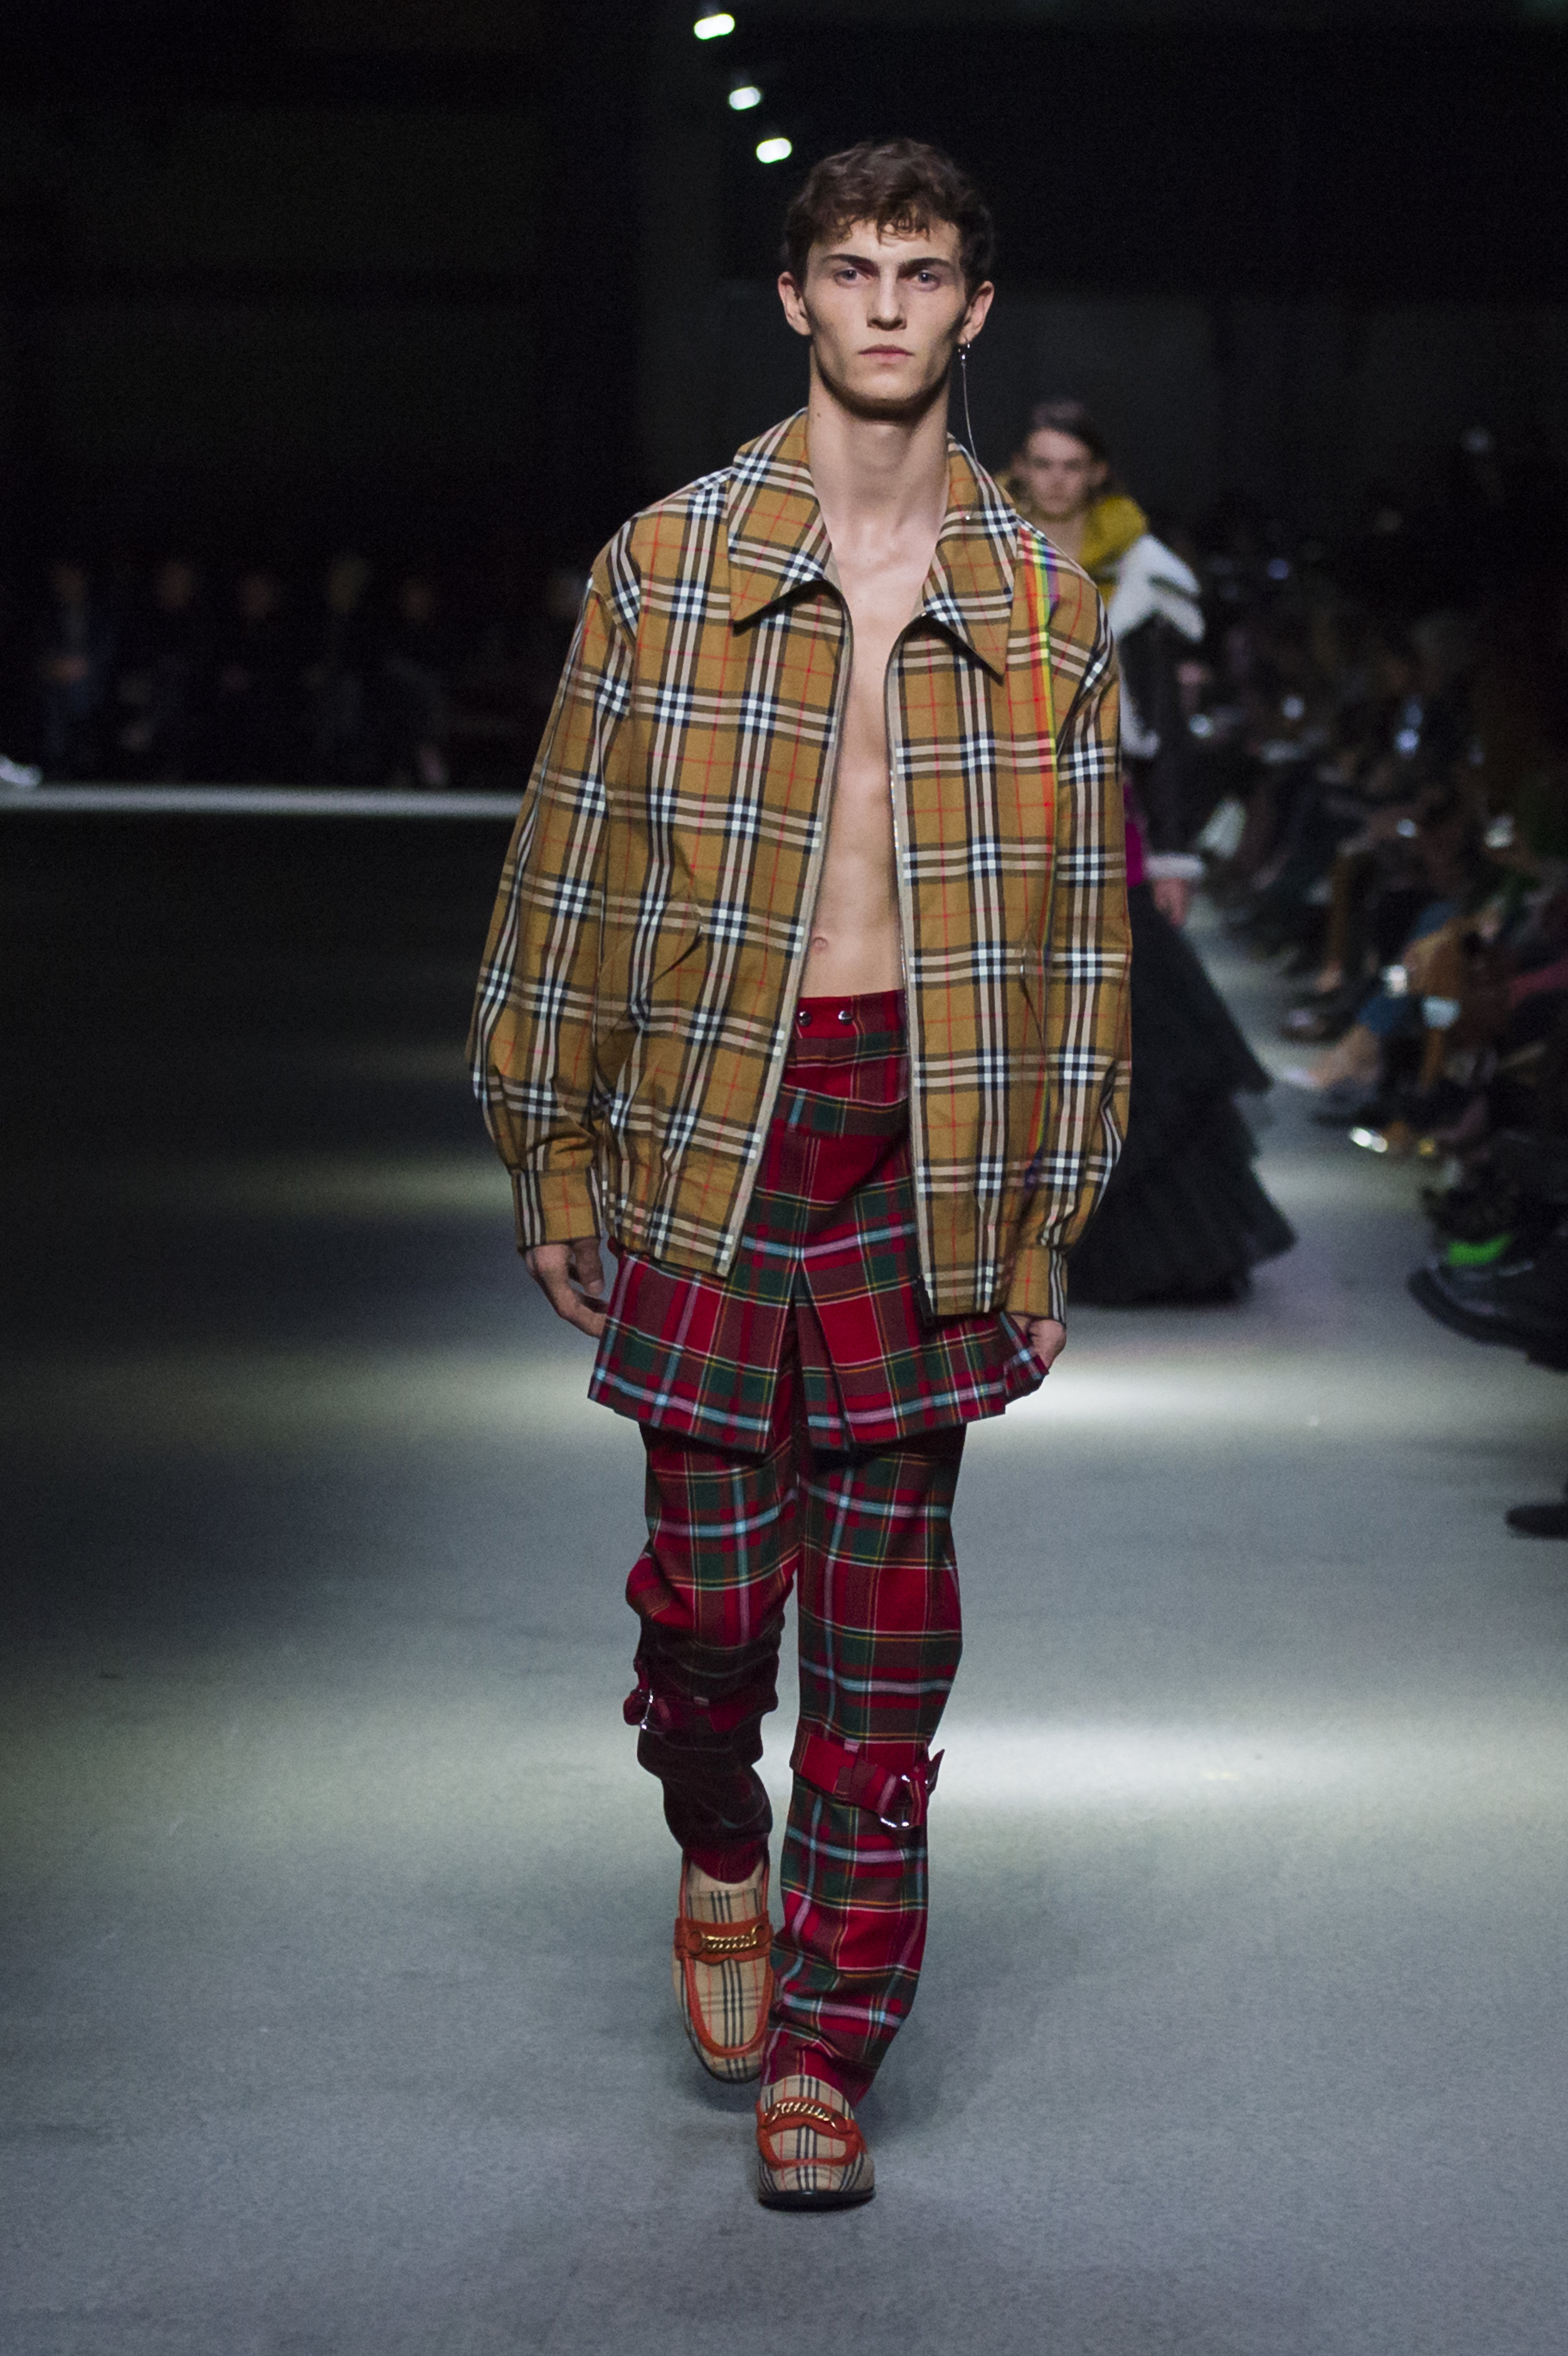 Burberry February Collection 2018 - Look 23.jpg